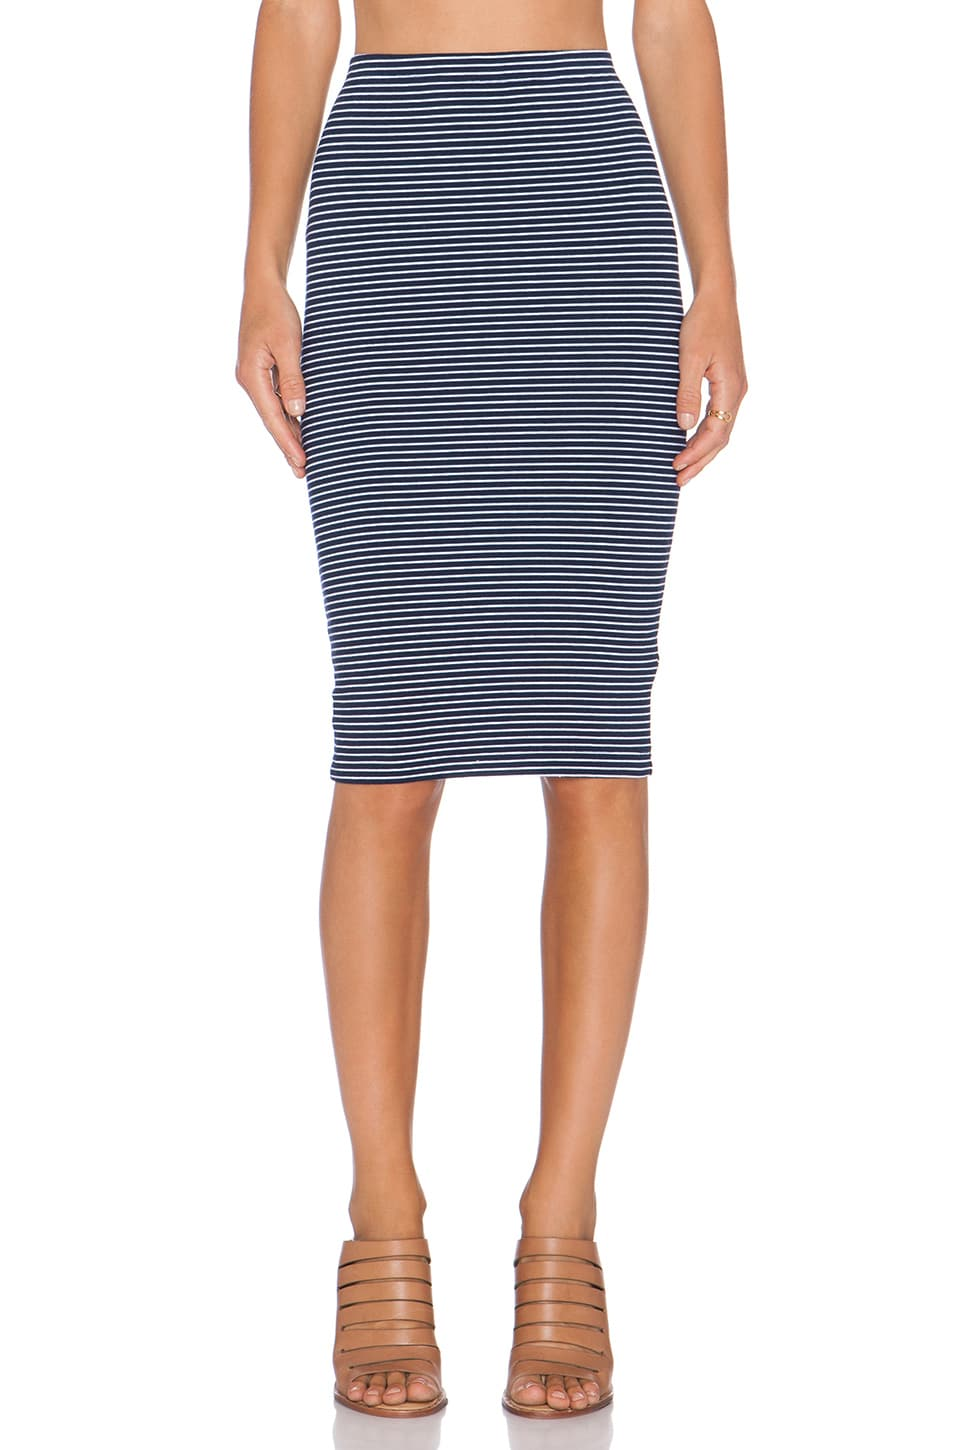 Bobi Striped Heavy Spandex Midi Skirt in Passport & White